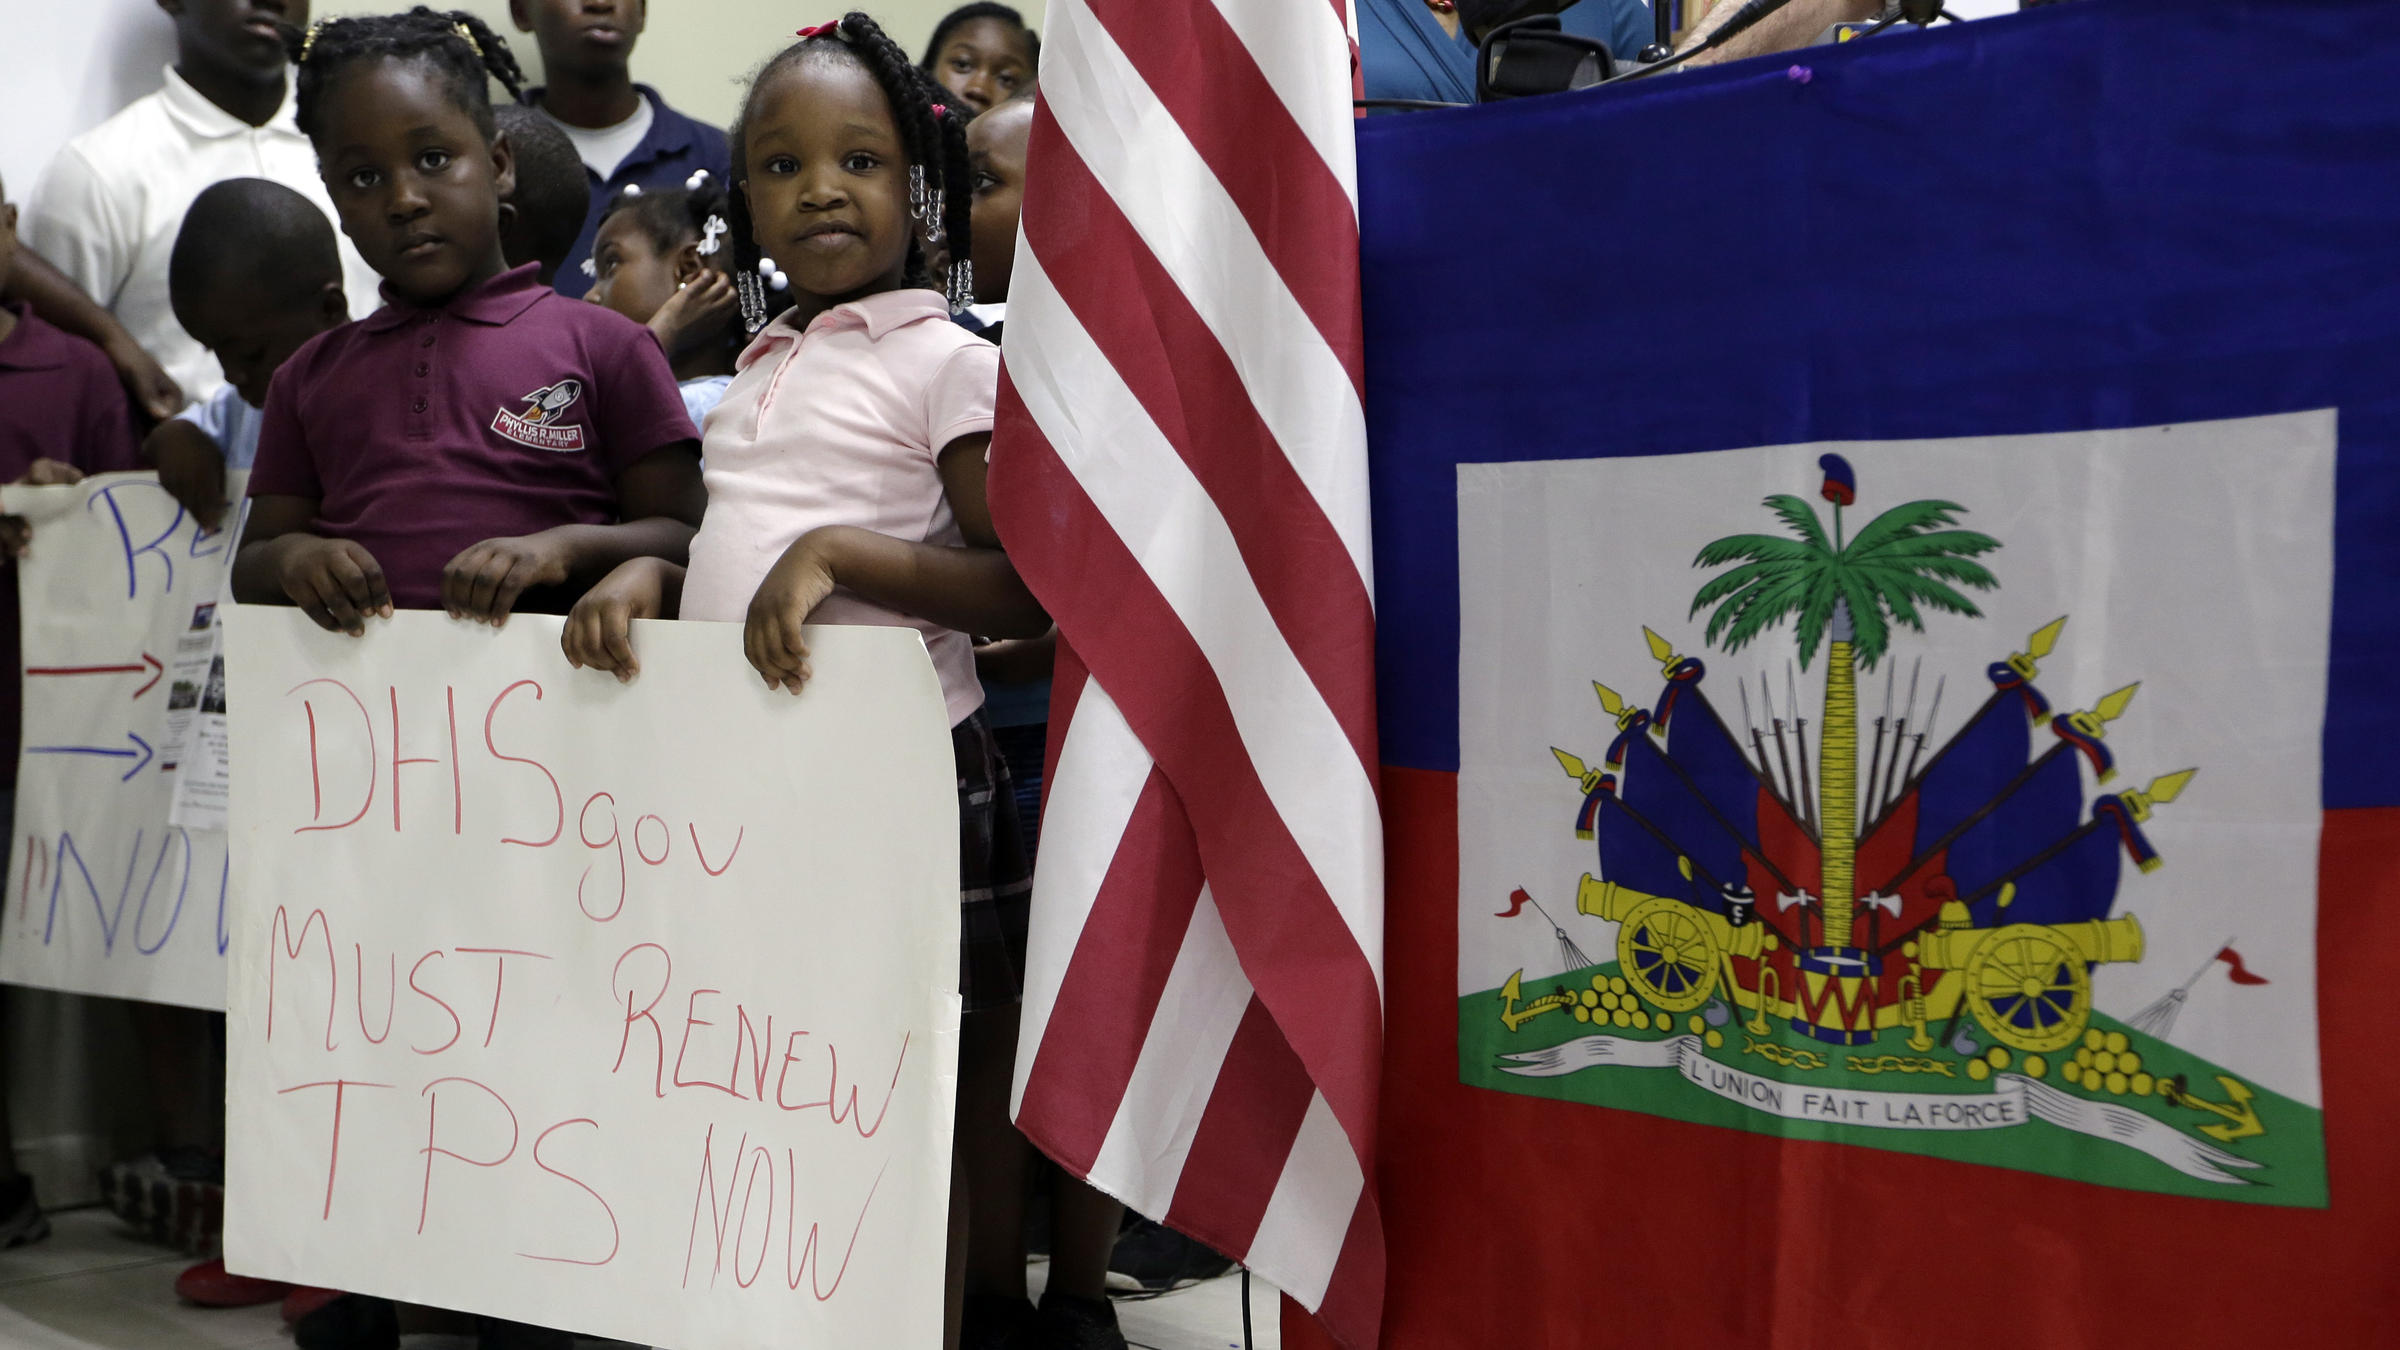 NAACP sues Homeland Security over Haiti immigration policy